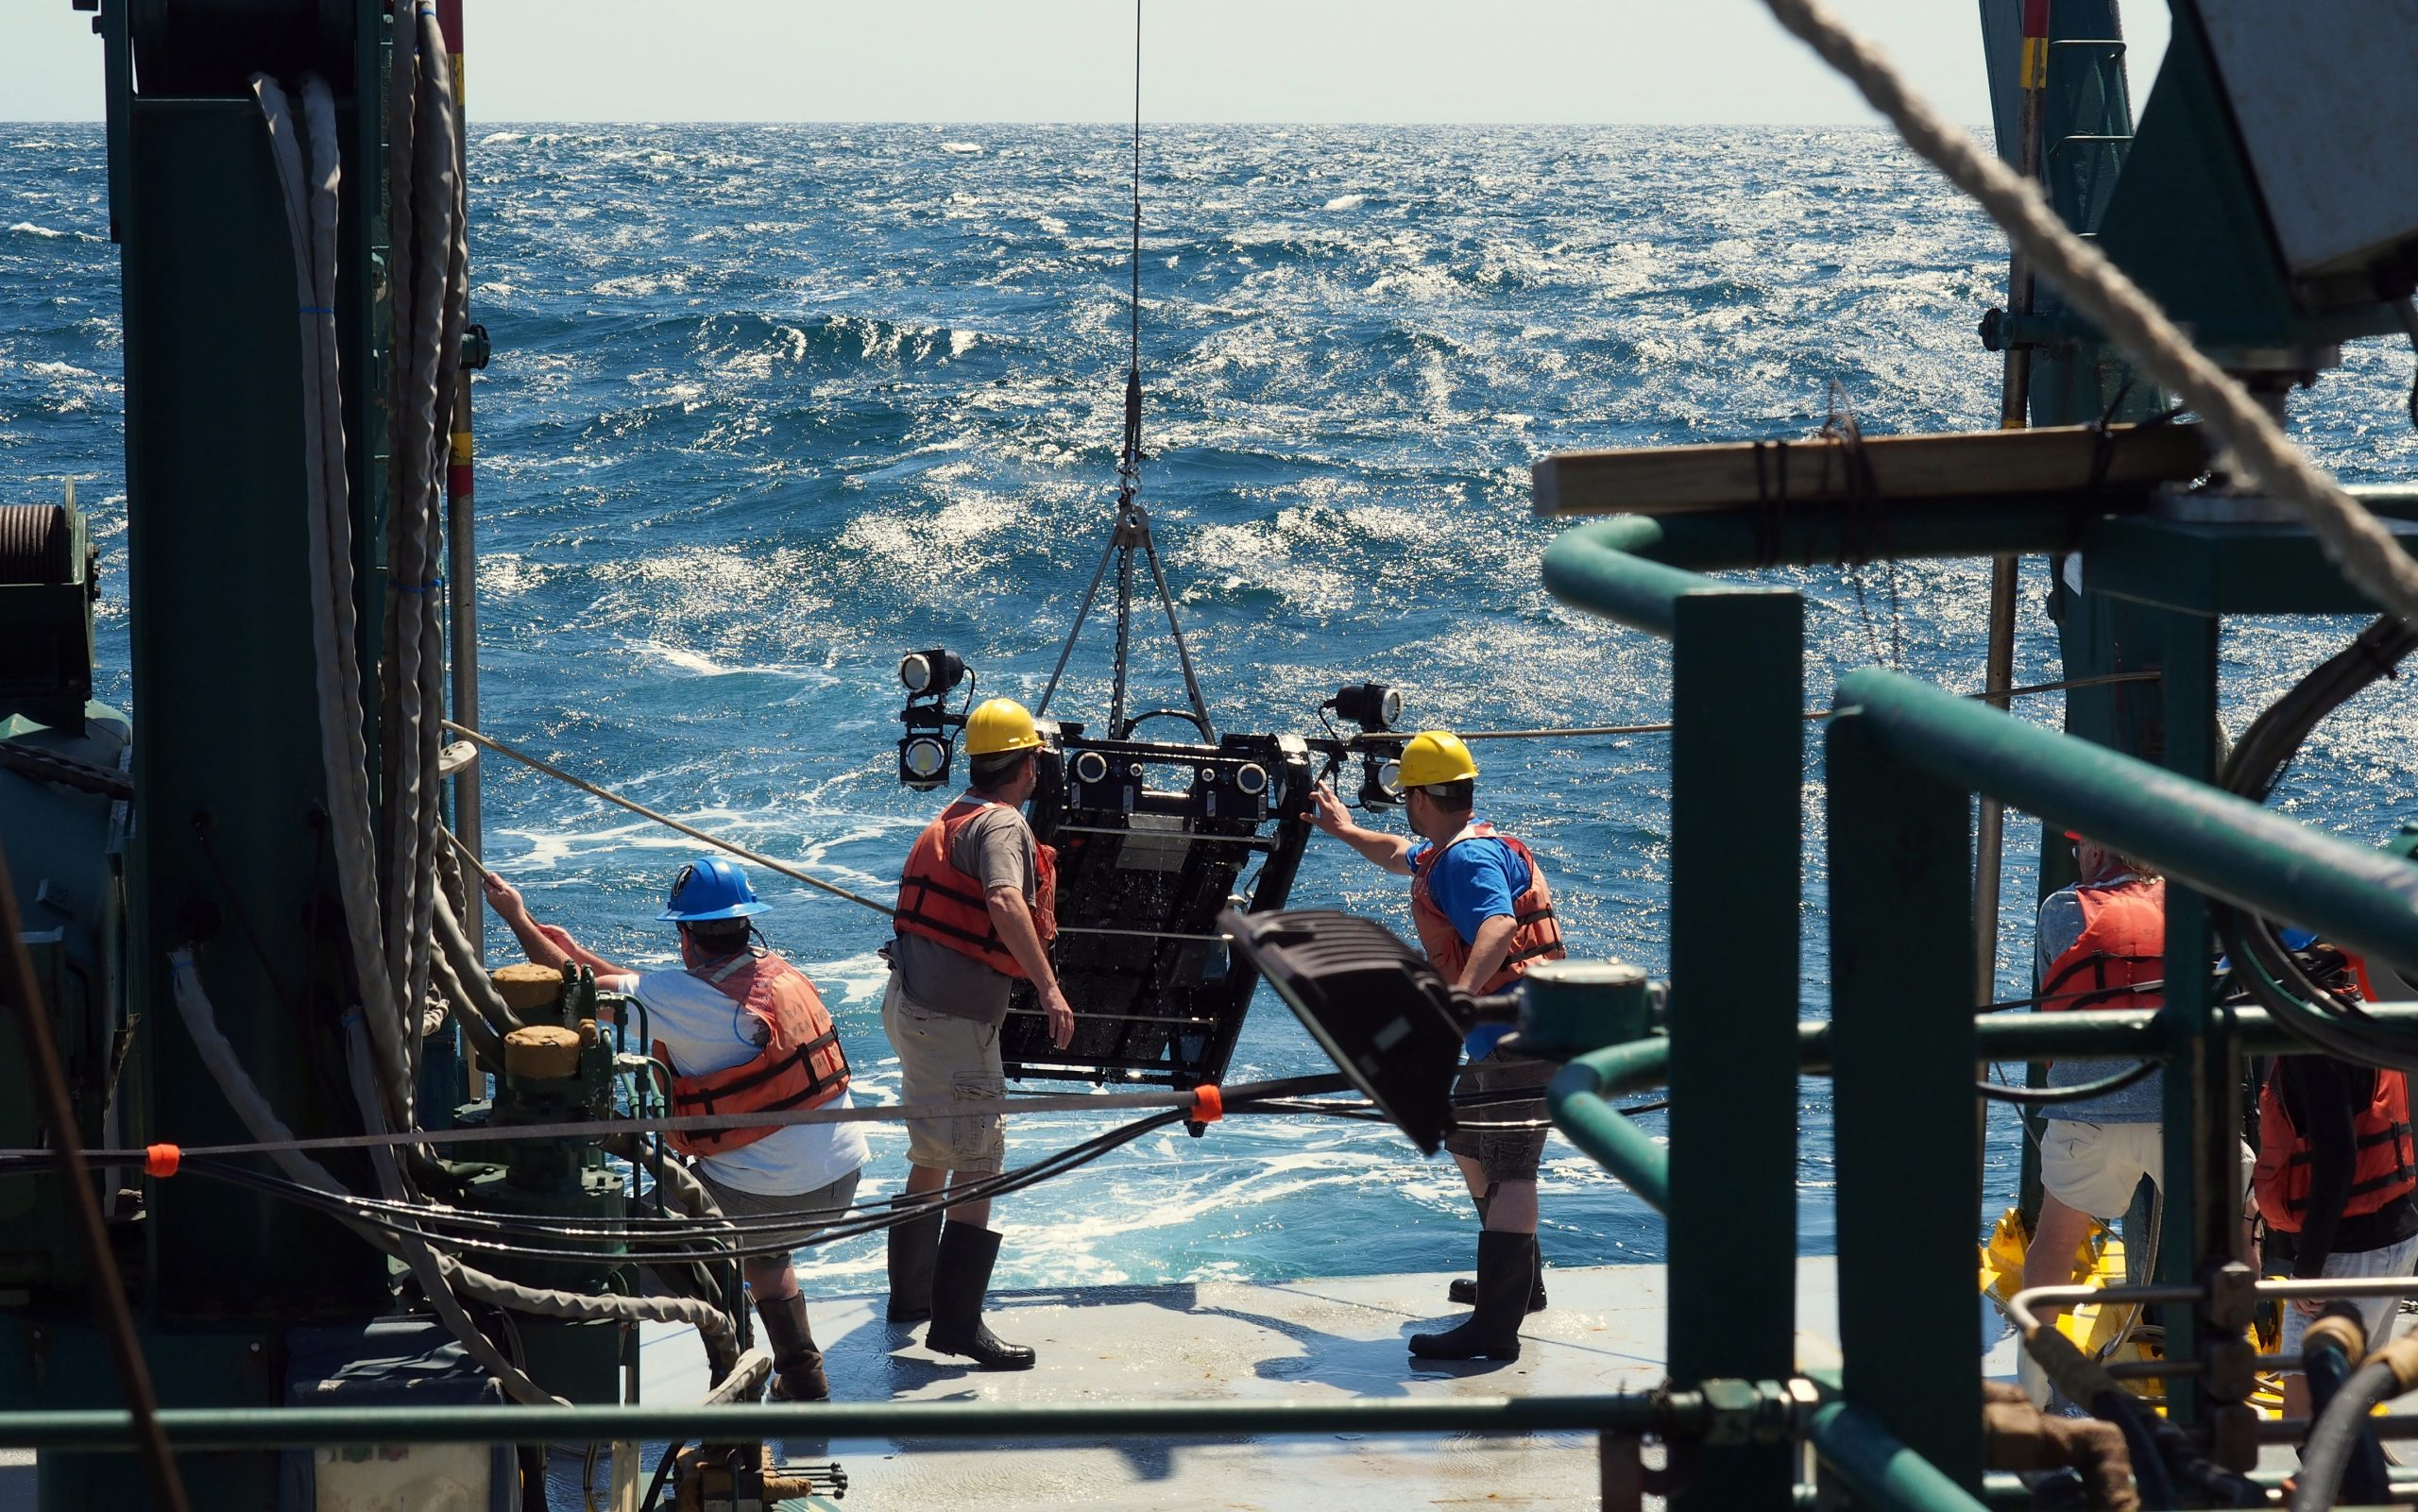 Recovery of the video tow platform C-BASS in April 2016 following a near bottom tow to collect bottom habitat and fish density distributions in the eastern Gulf of Mexico (In photo left to right Edmund Hughes, Chad Lembke, Alex Silverman, Steve Butcher, vessel R/V Weatherbird, photo credit Matt Hommeyer)